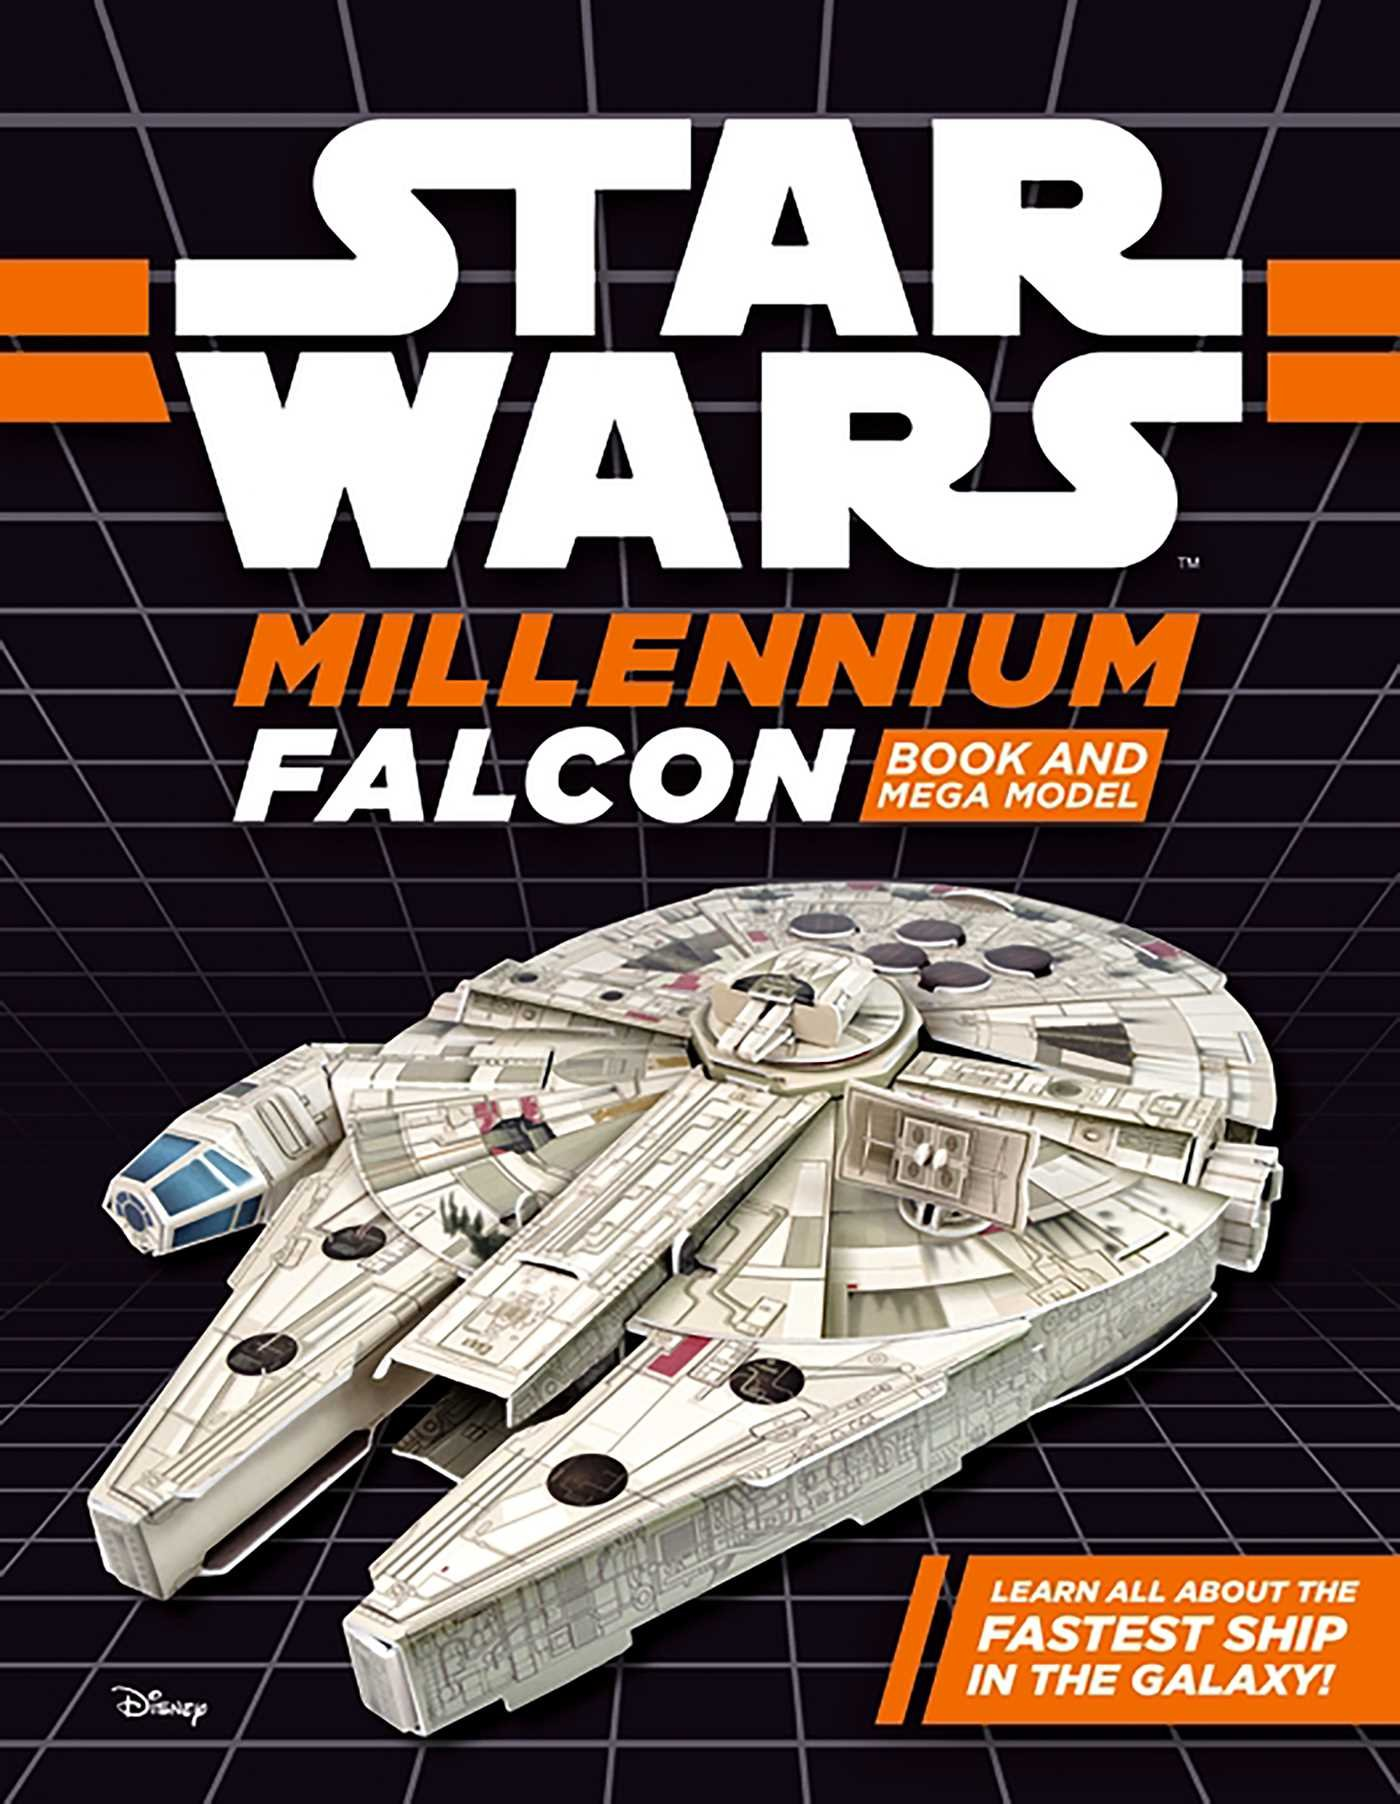 Star Wars - Build Your Own Millennium Falcon